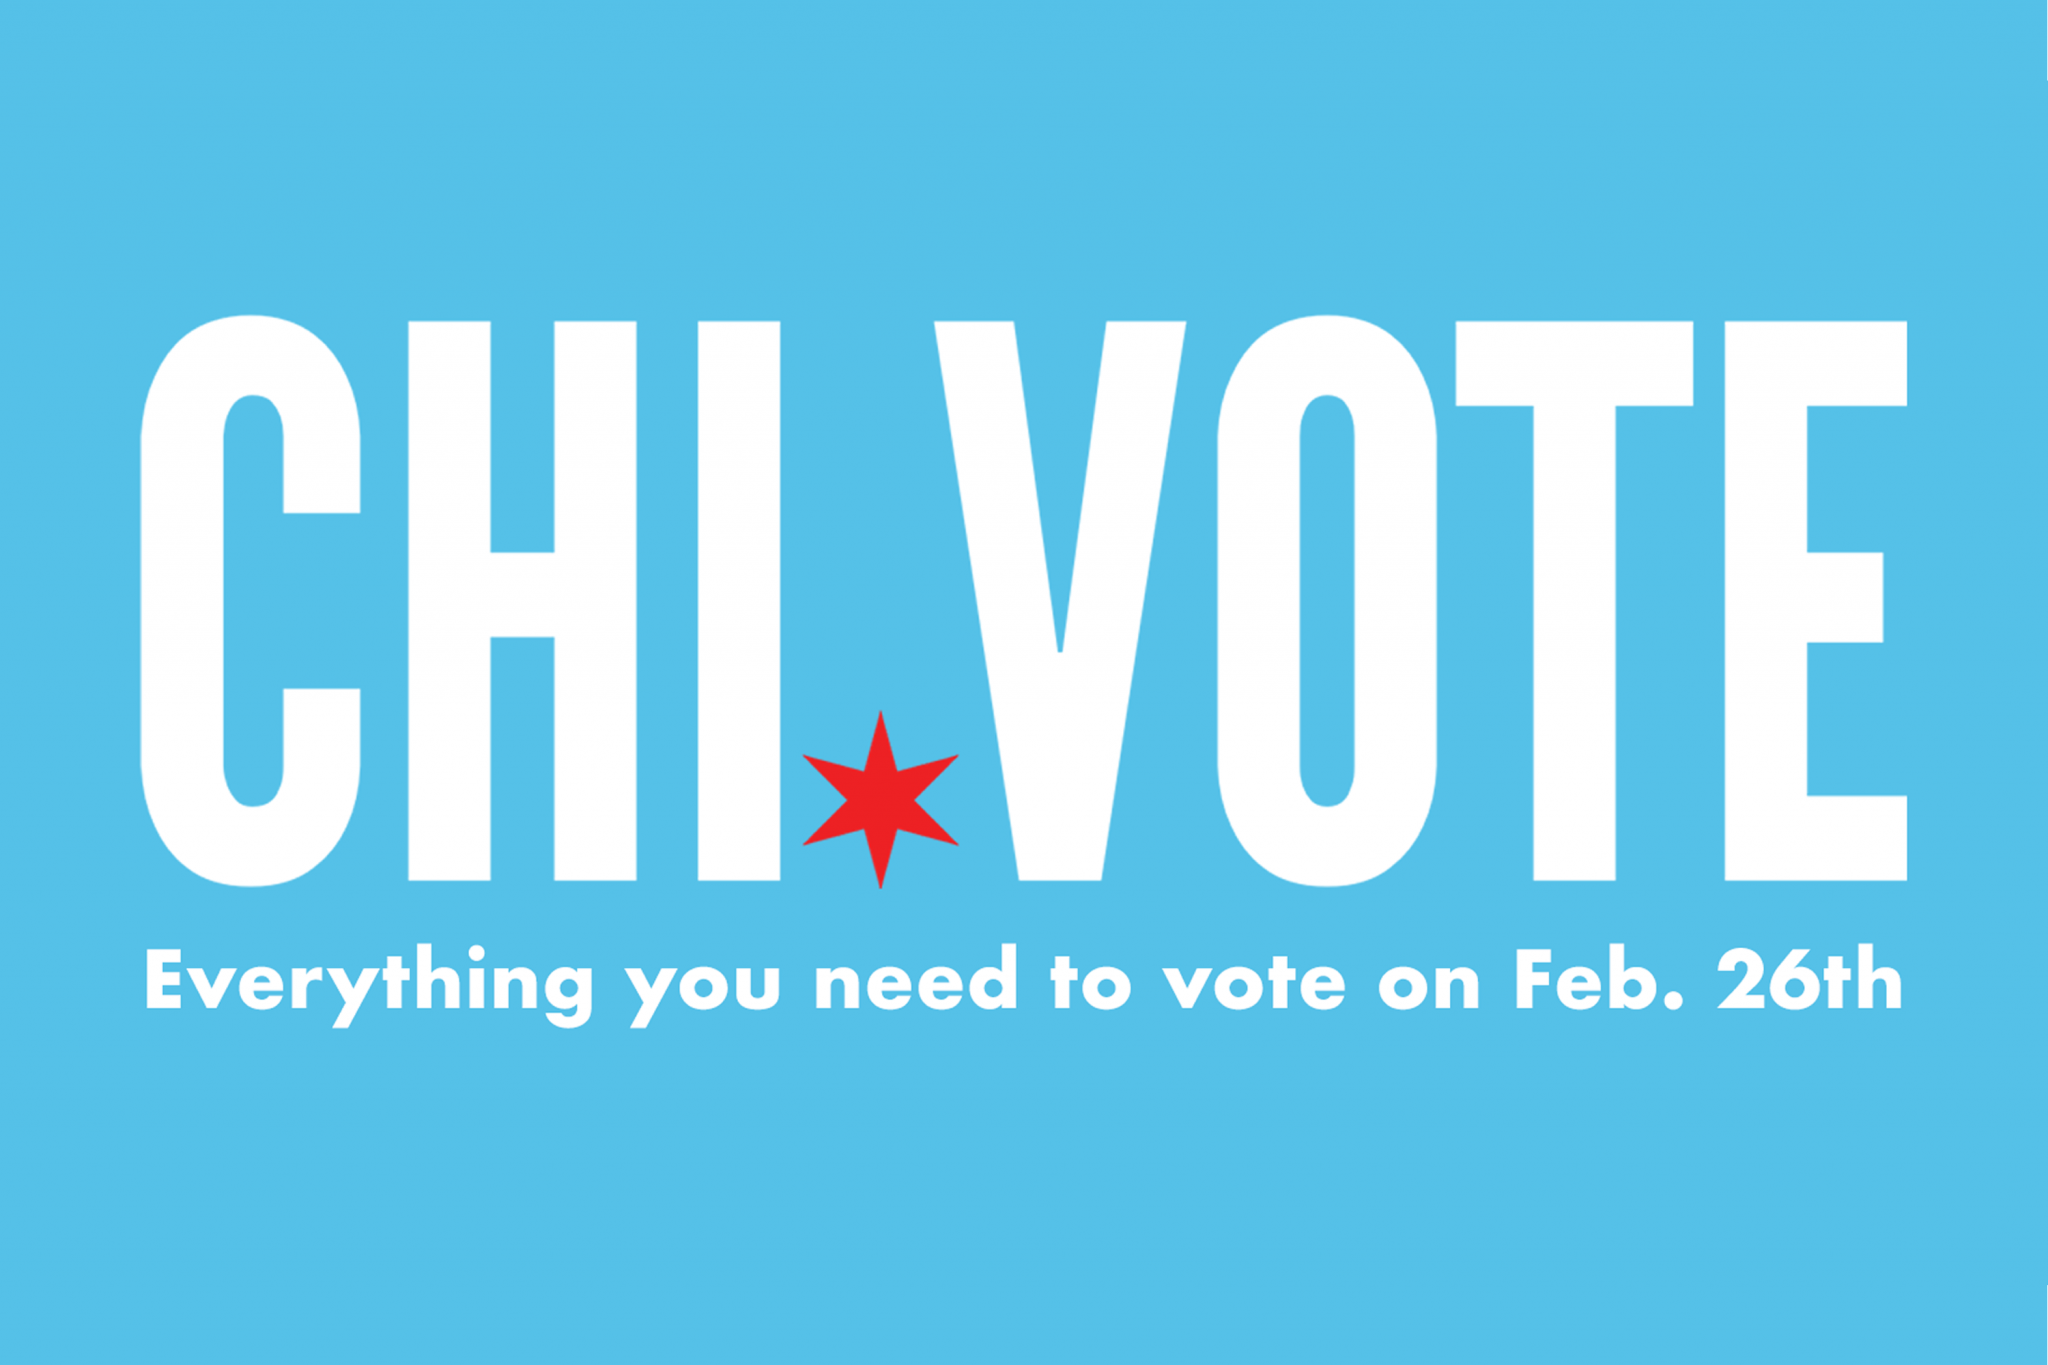 C_3x2_Chi-vote_refer.png